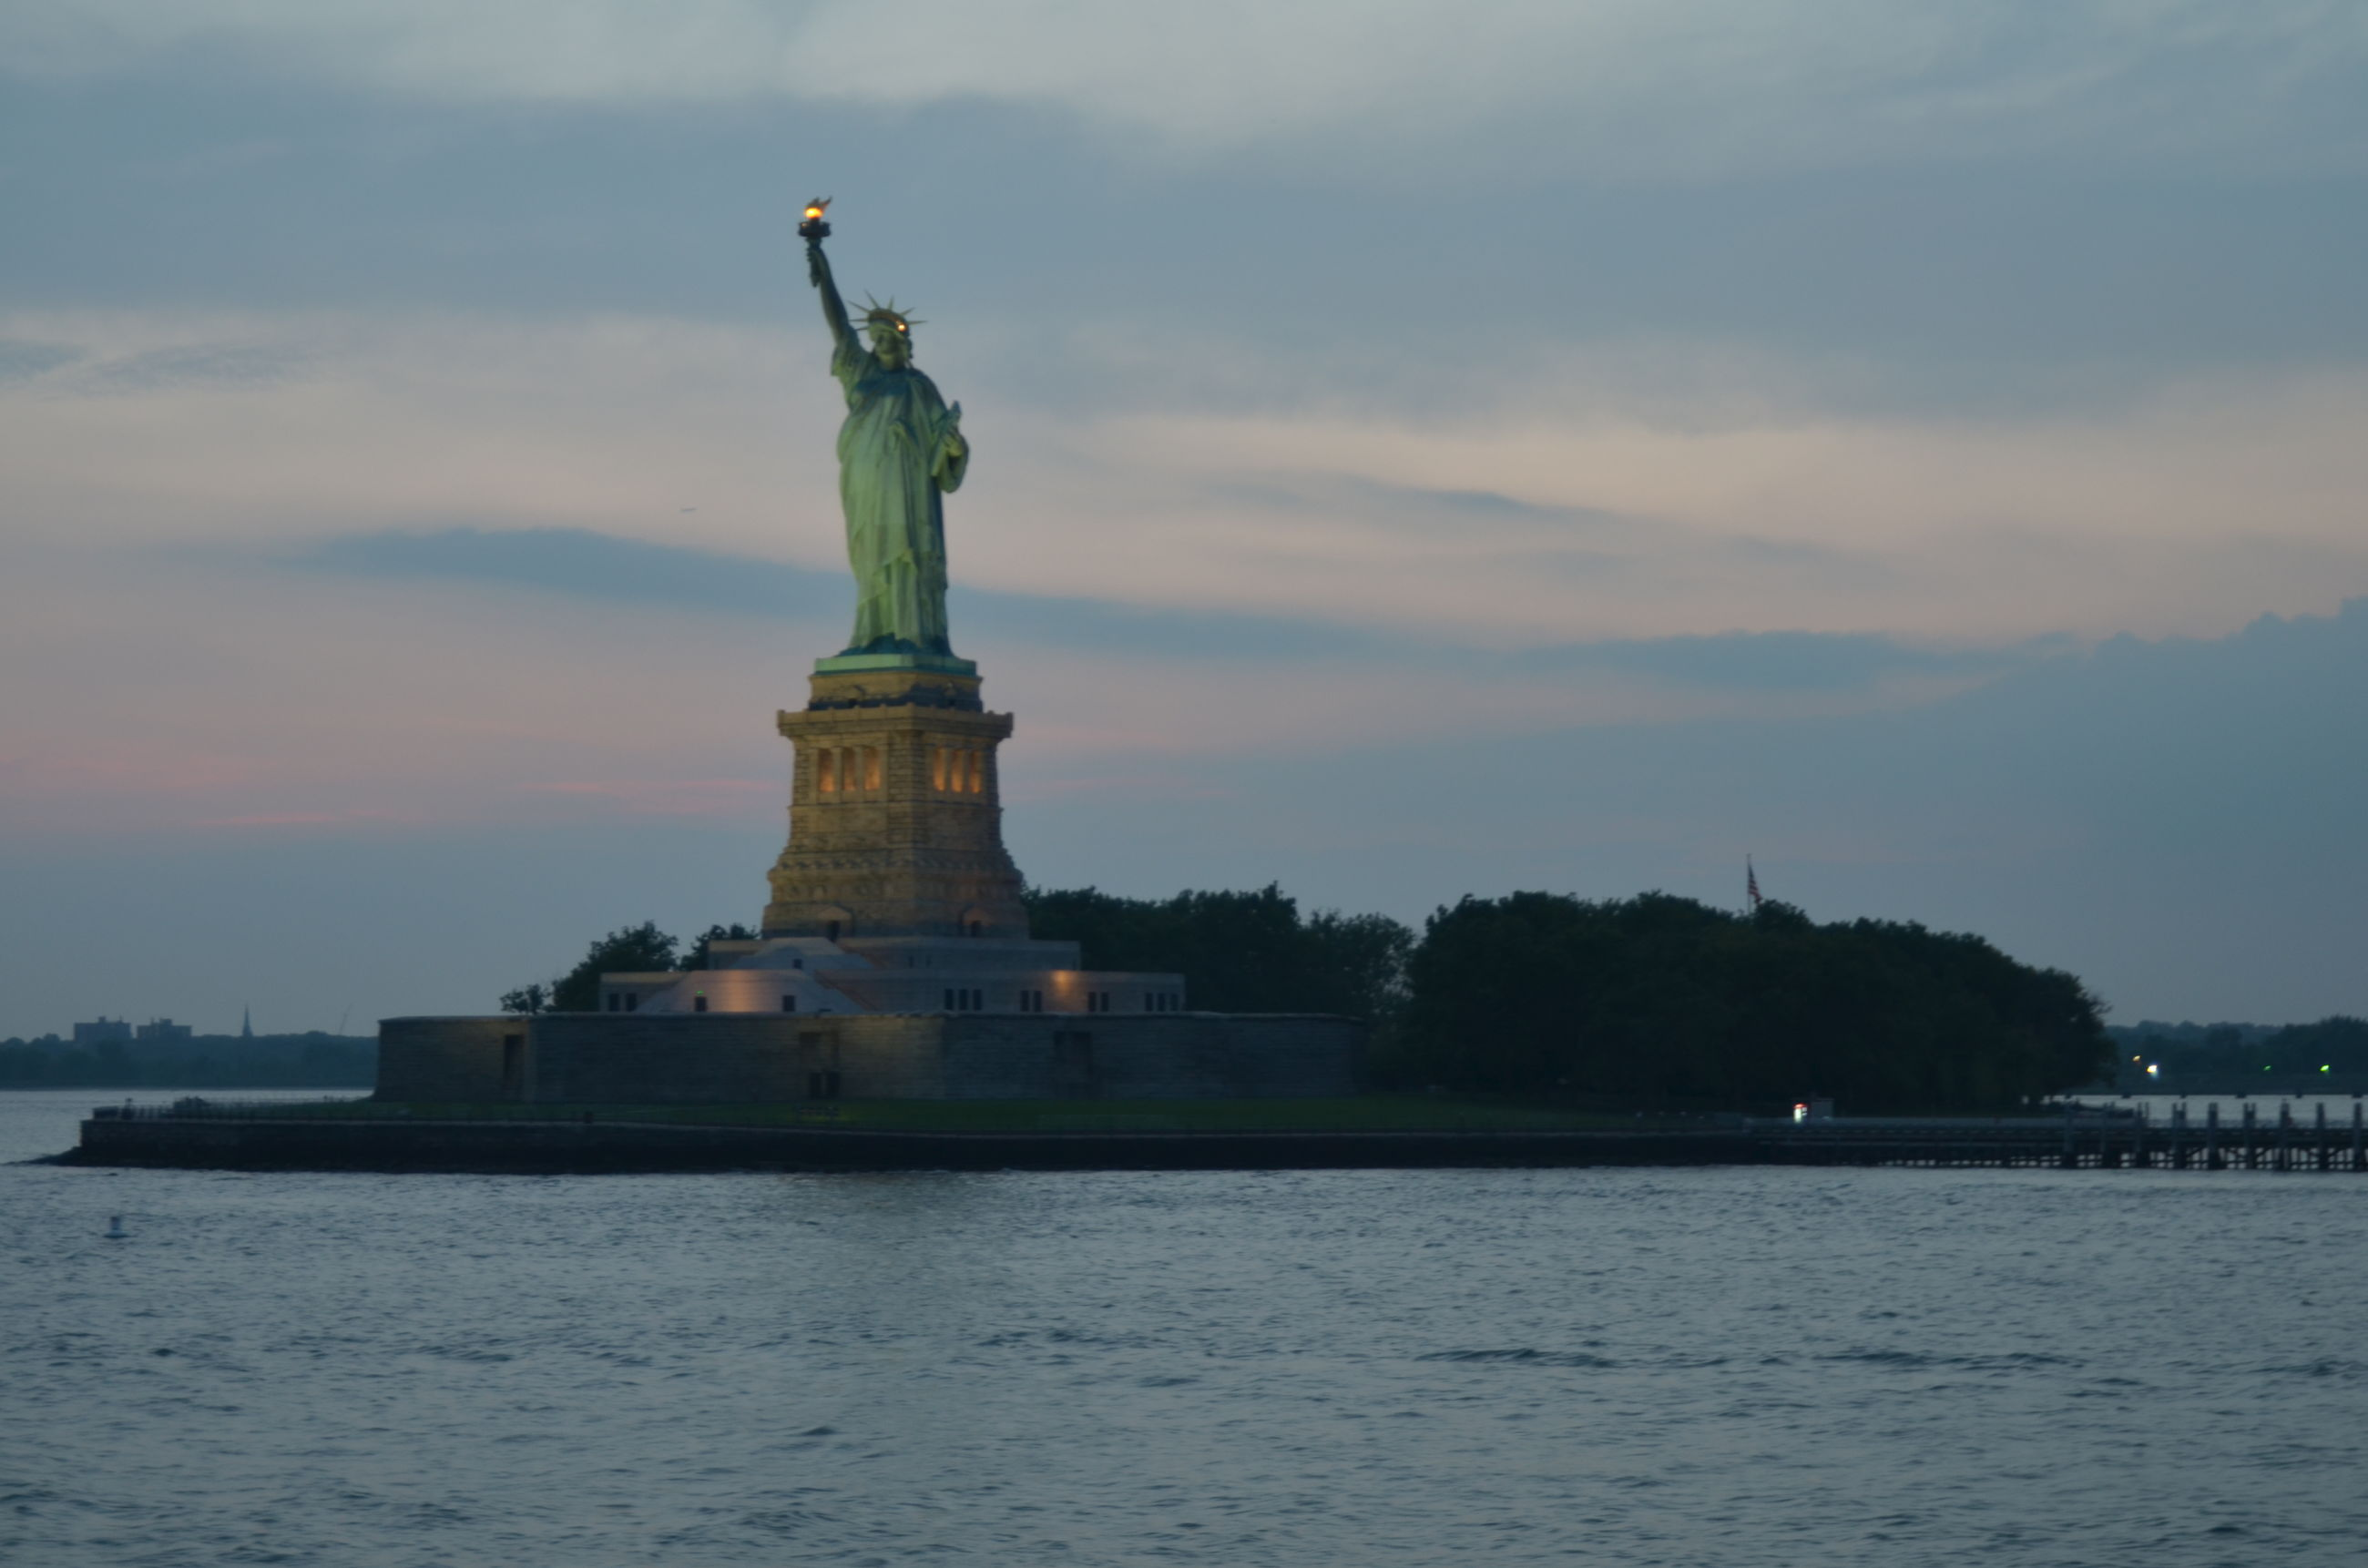 statue, sculpture, human representation, art and craft, art, creativity, sky, water, waterfront, statue of liberty, famous place, animal representation, travel destinations, cloud - sky, built structure, architecture, international landmark, fountain